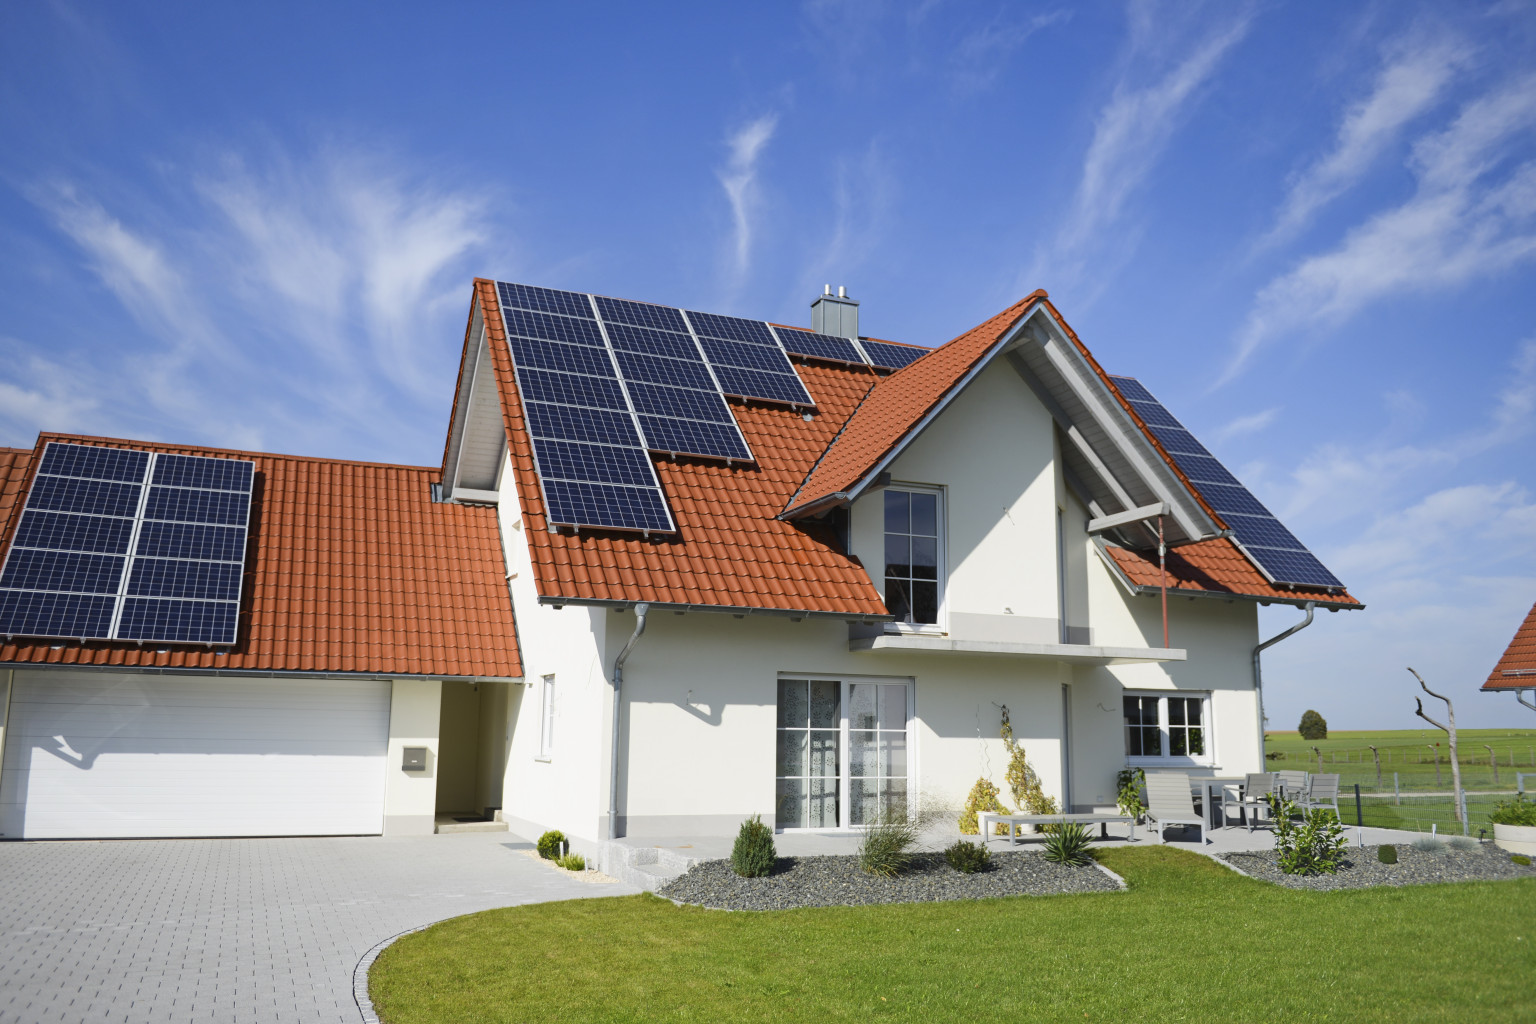 Solar Power In The U.S. Becoming A More Popular, Cost-Saving Option ...